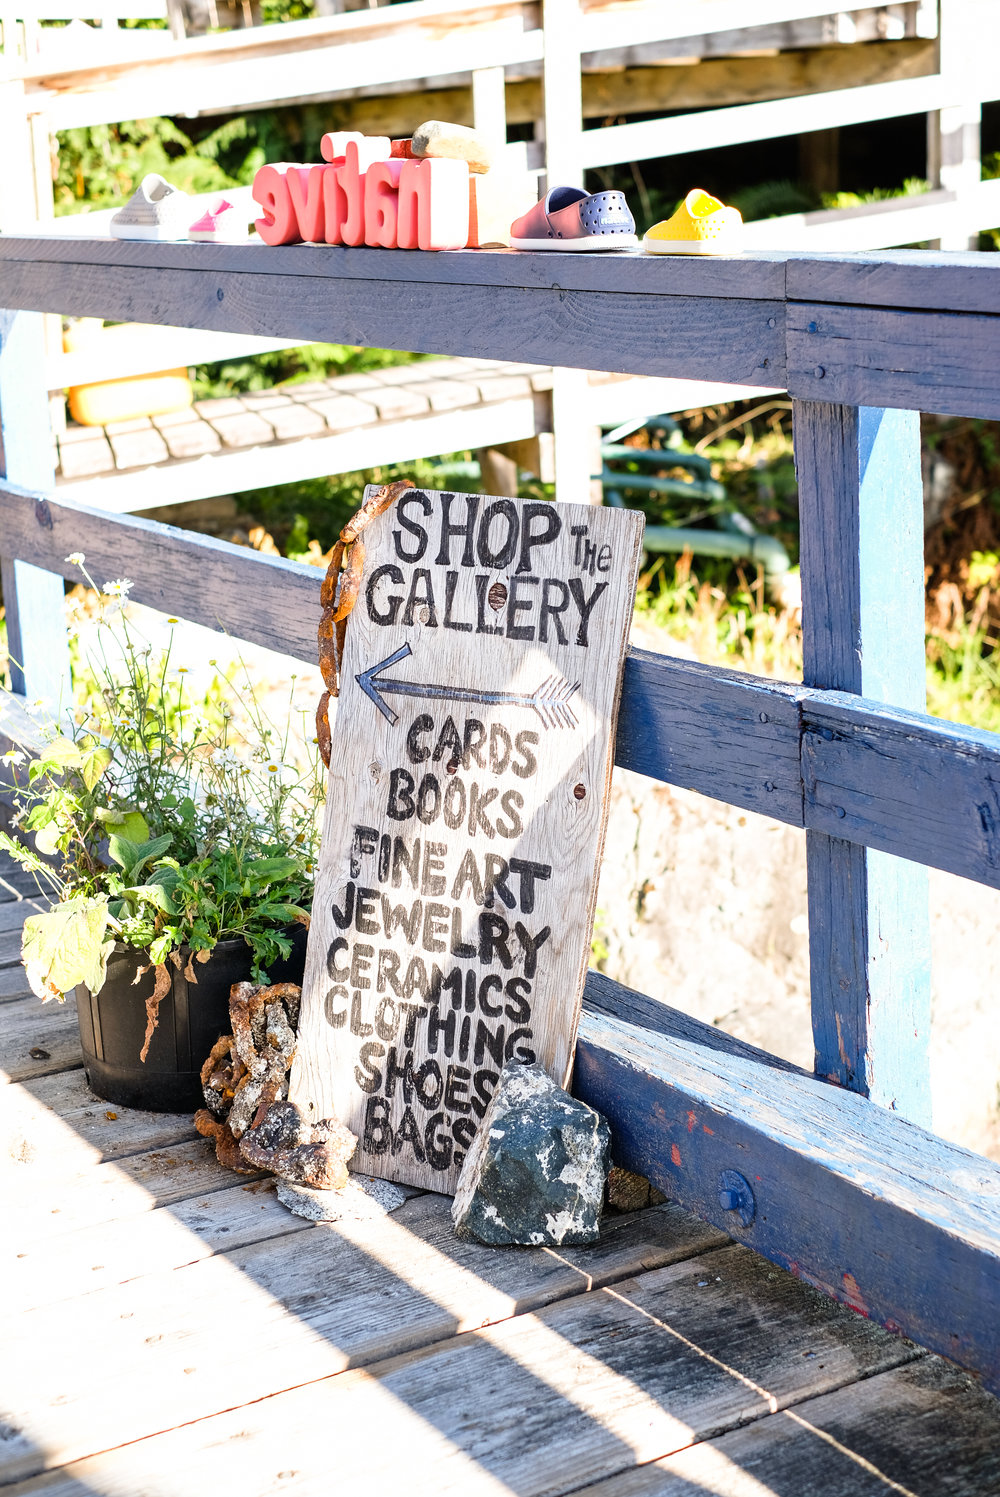 The Gallery signage on the boardwalks of Refuge Cove, BC Canada.  Image by Totes and the City for Destination: Desolation 2017